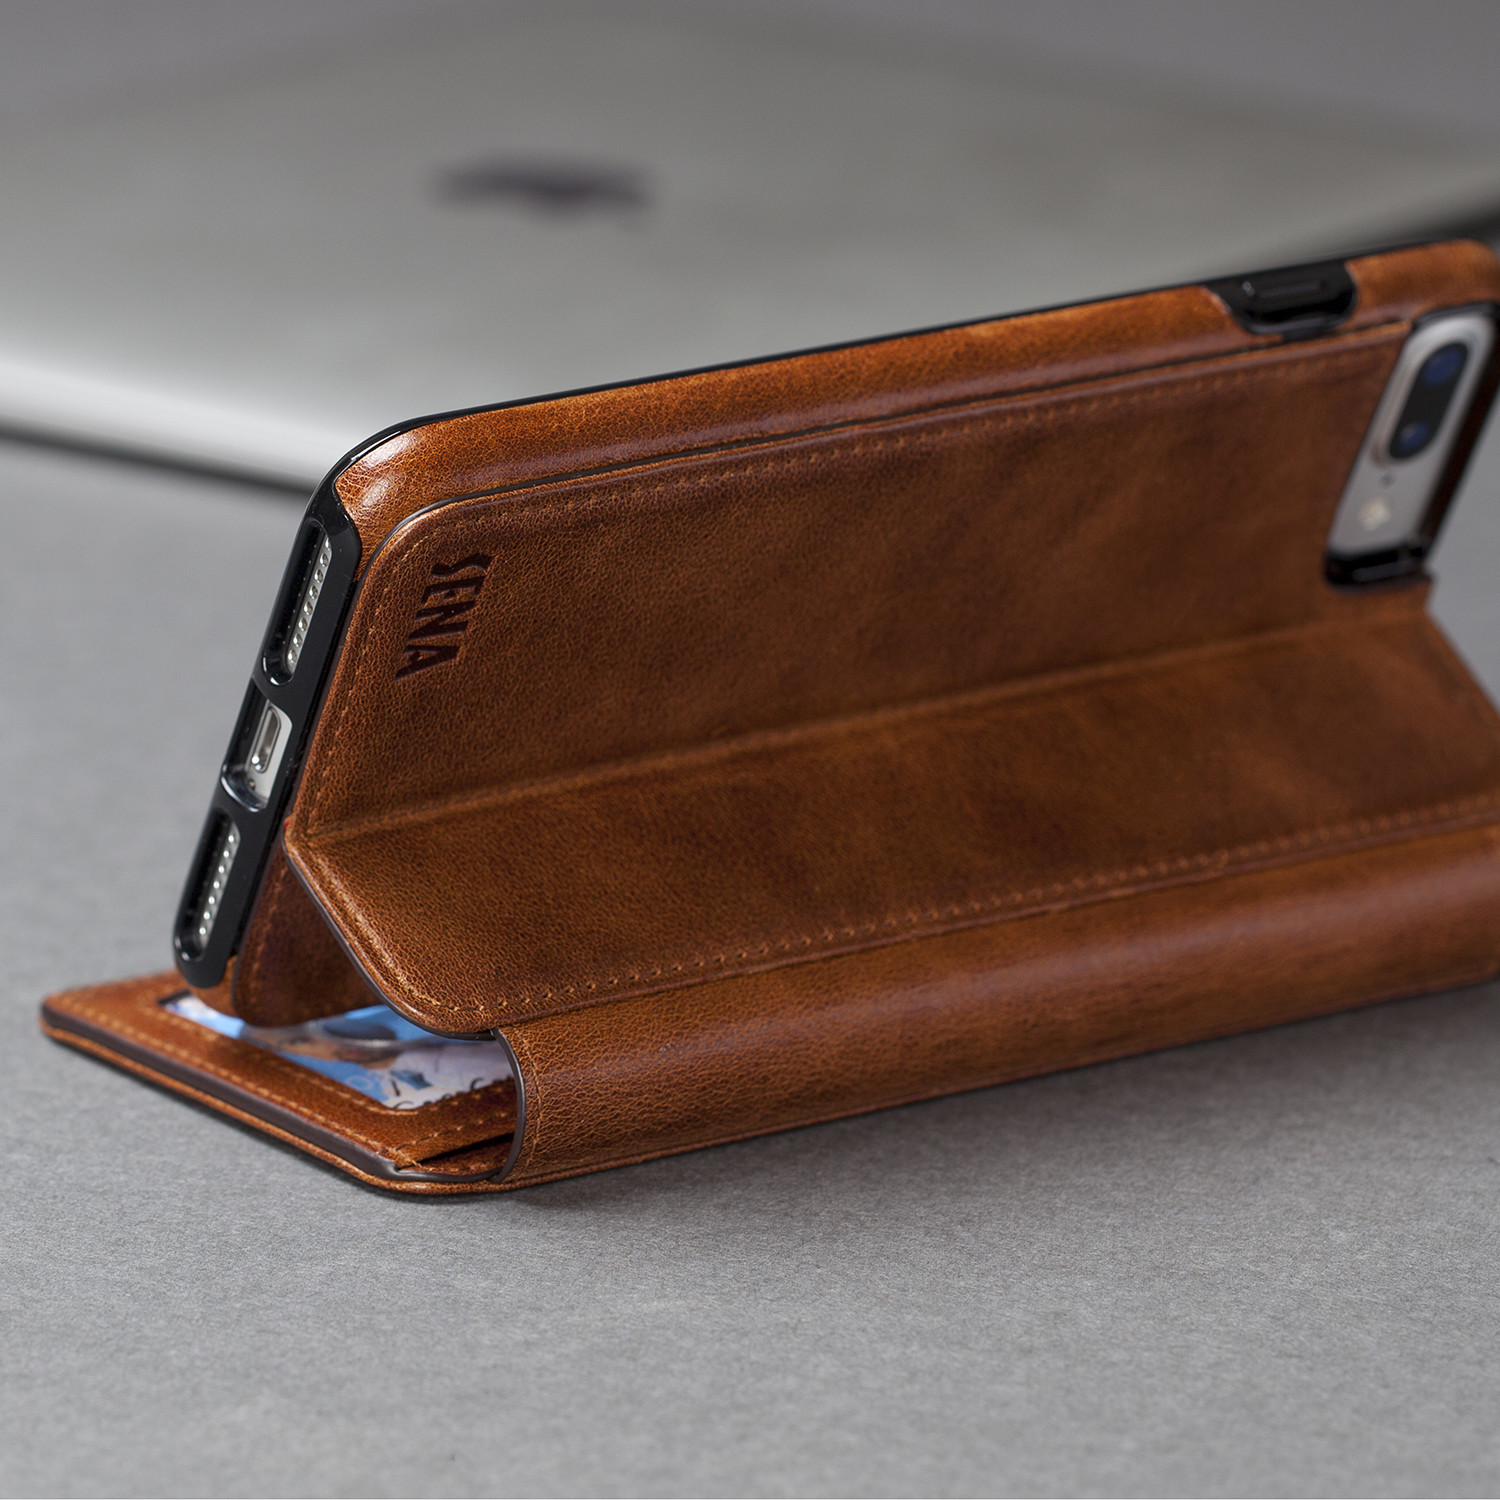 finest selection 3ec2b 66851 Wallet Book // Cognac (iPhone 7) - Sena Cases - Touch of Modern